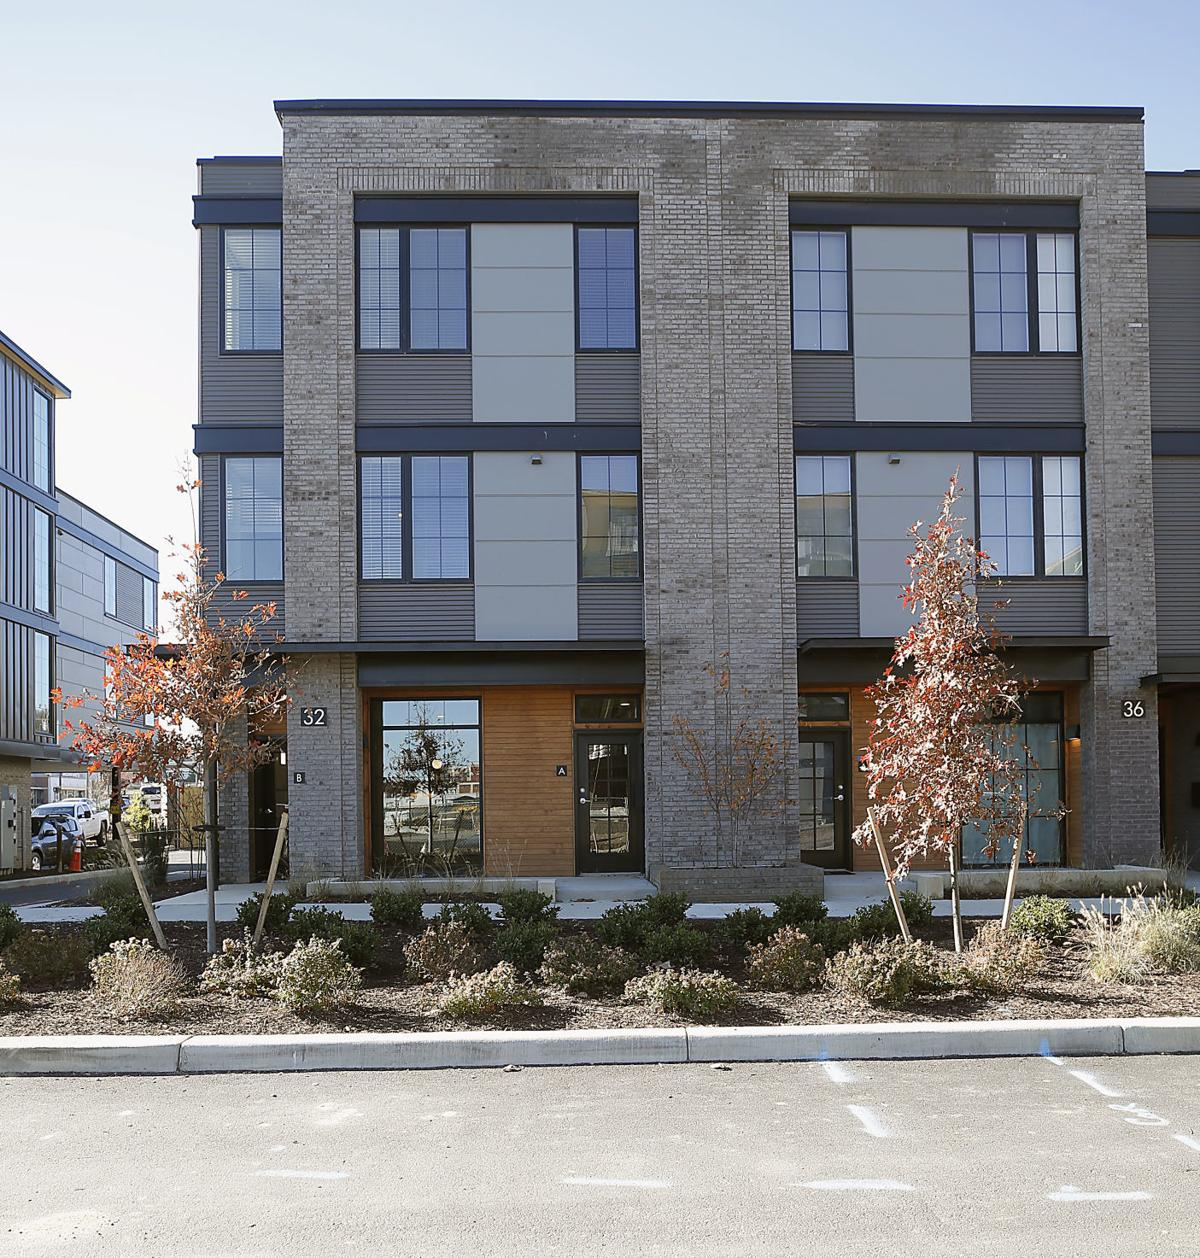 More Apartments Under Construction In Warner Center: More Than 1,000 Apartments In Manchester Are Under